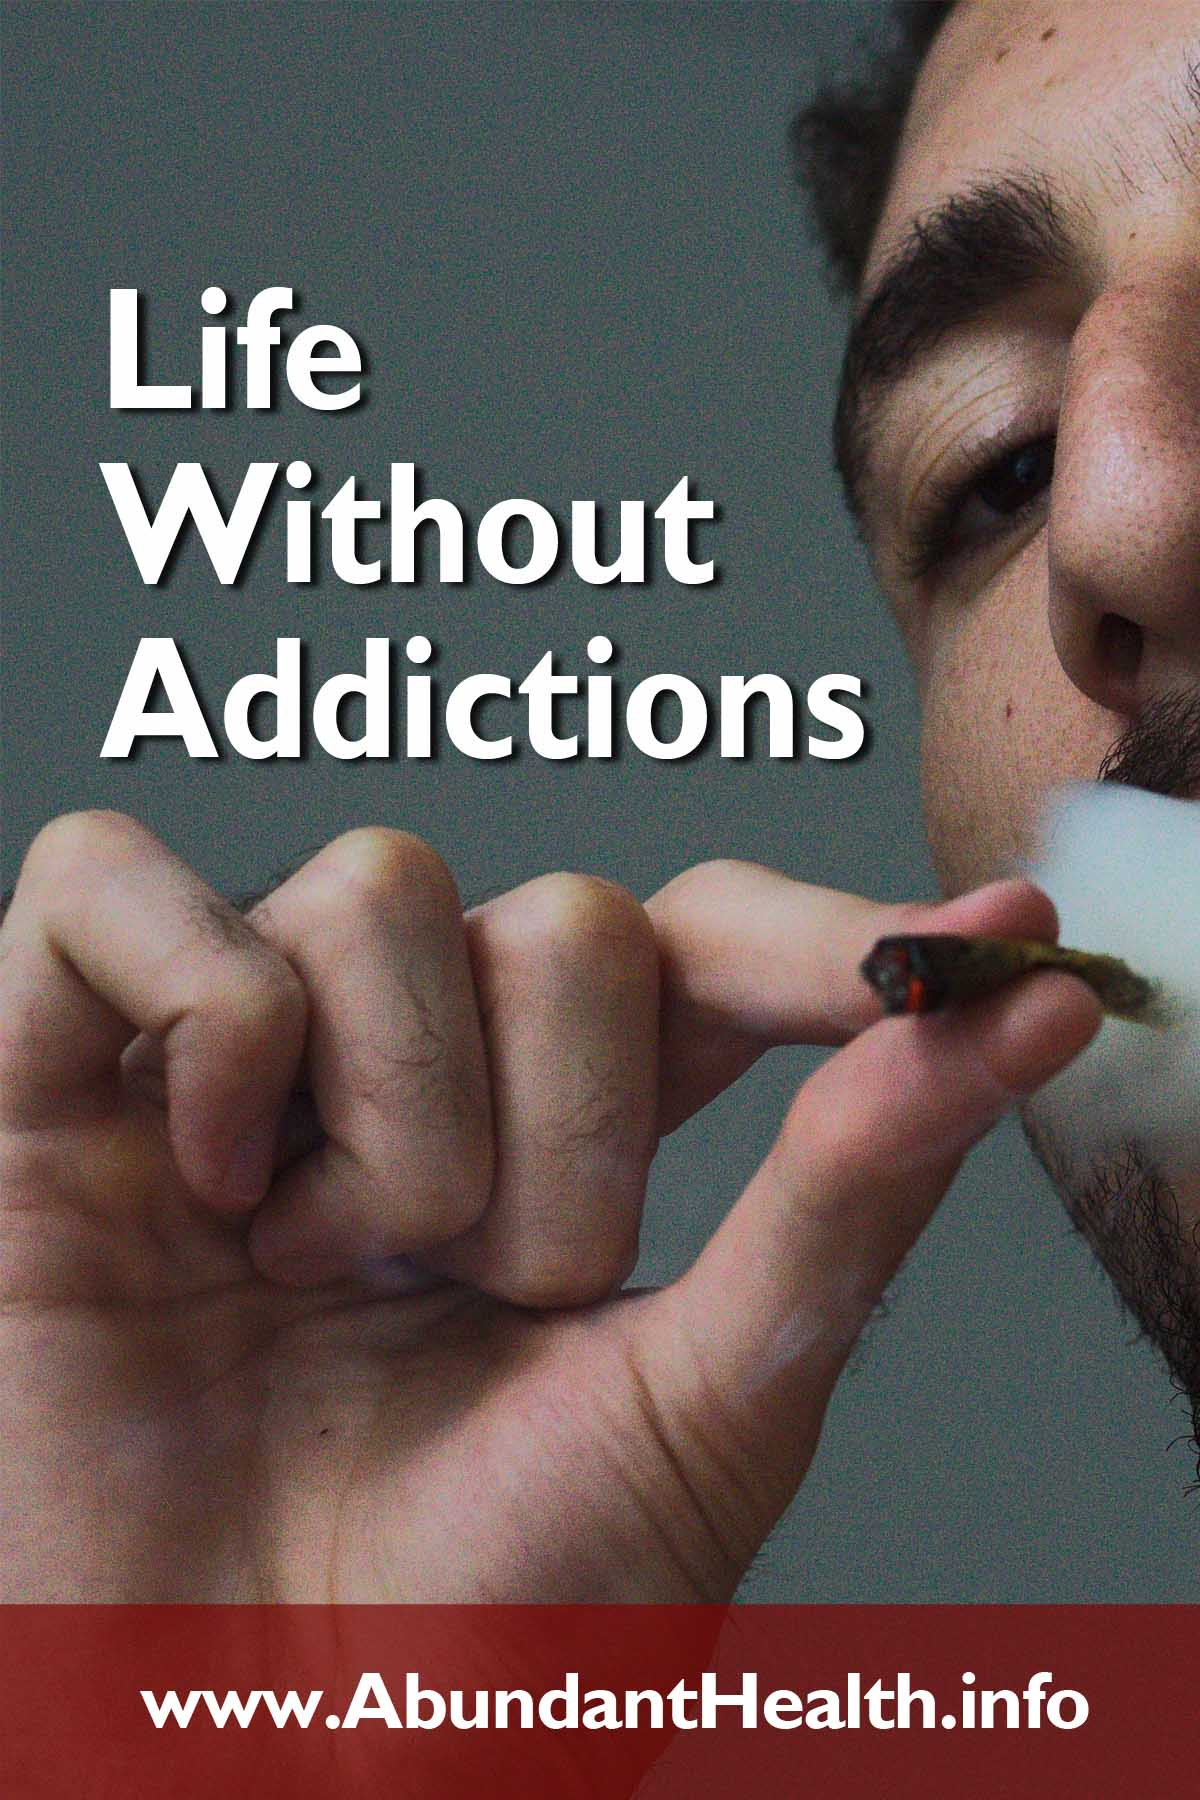 Life Without Addictions